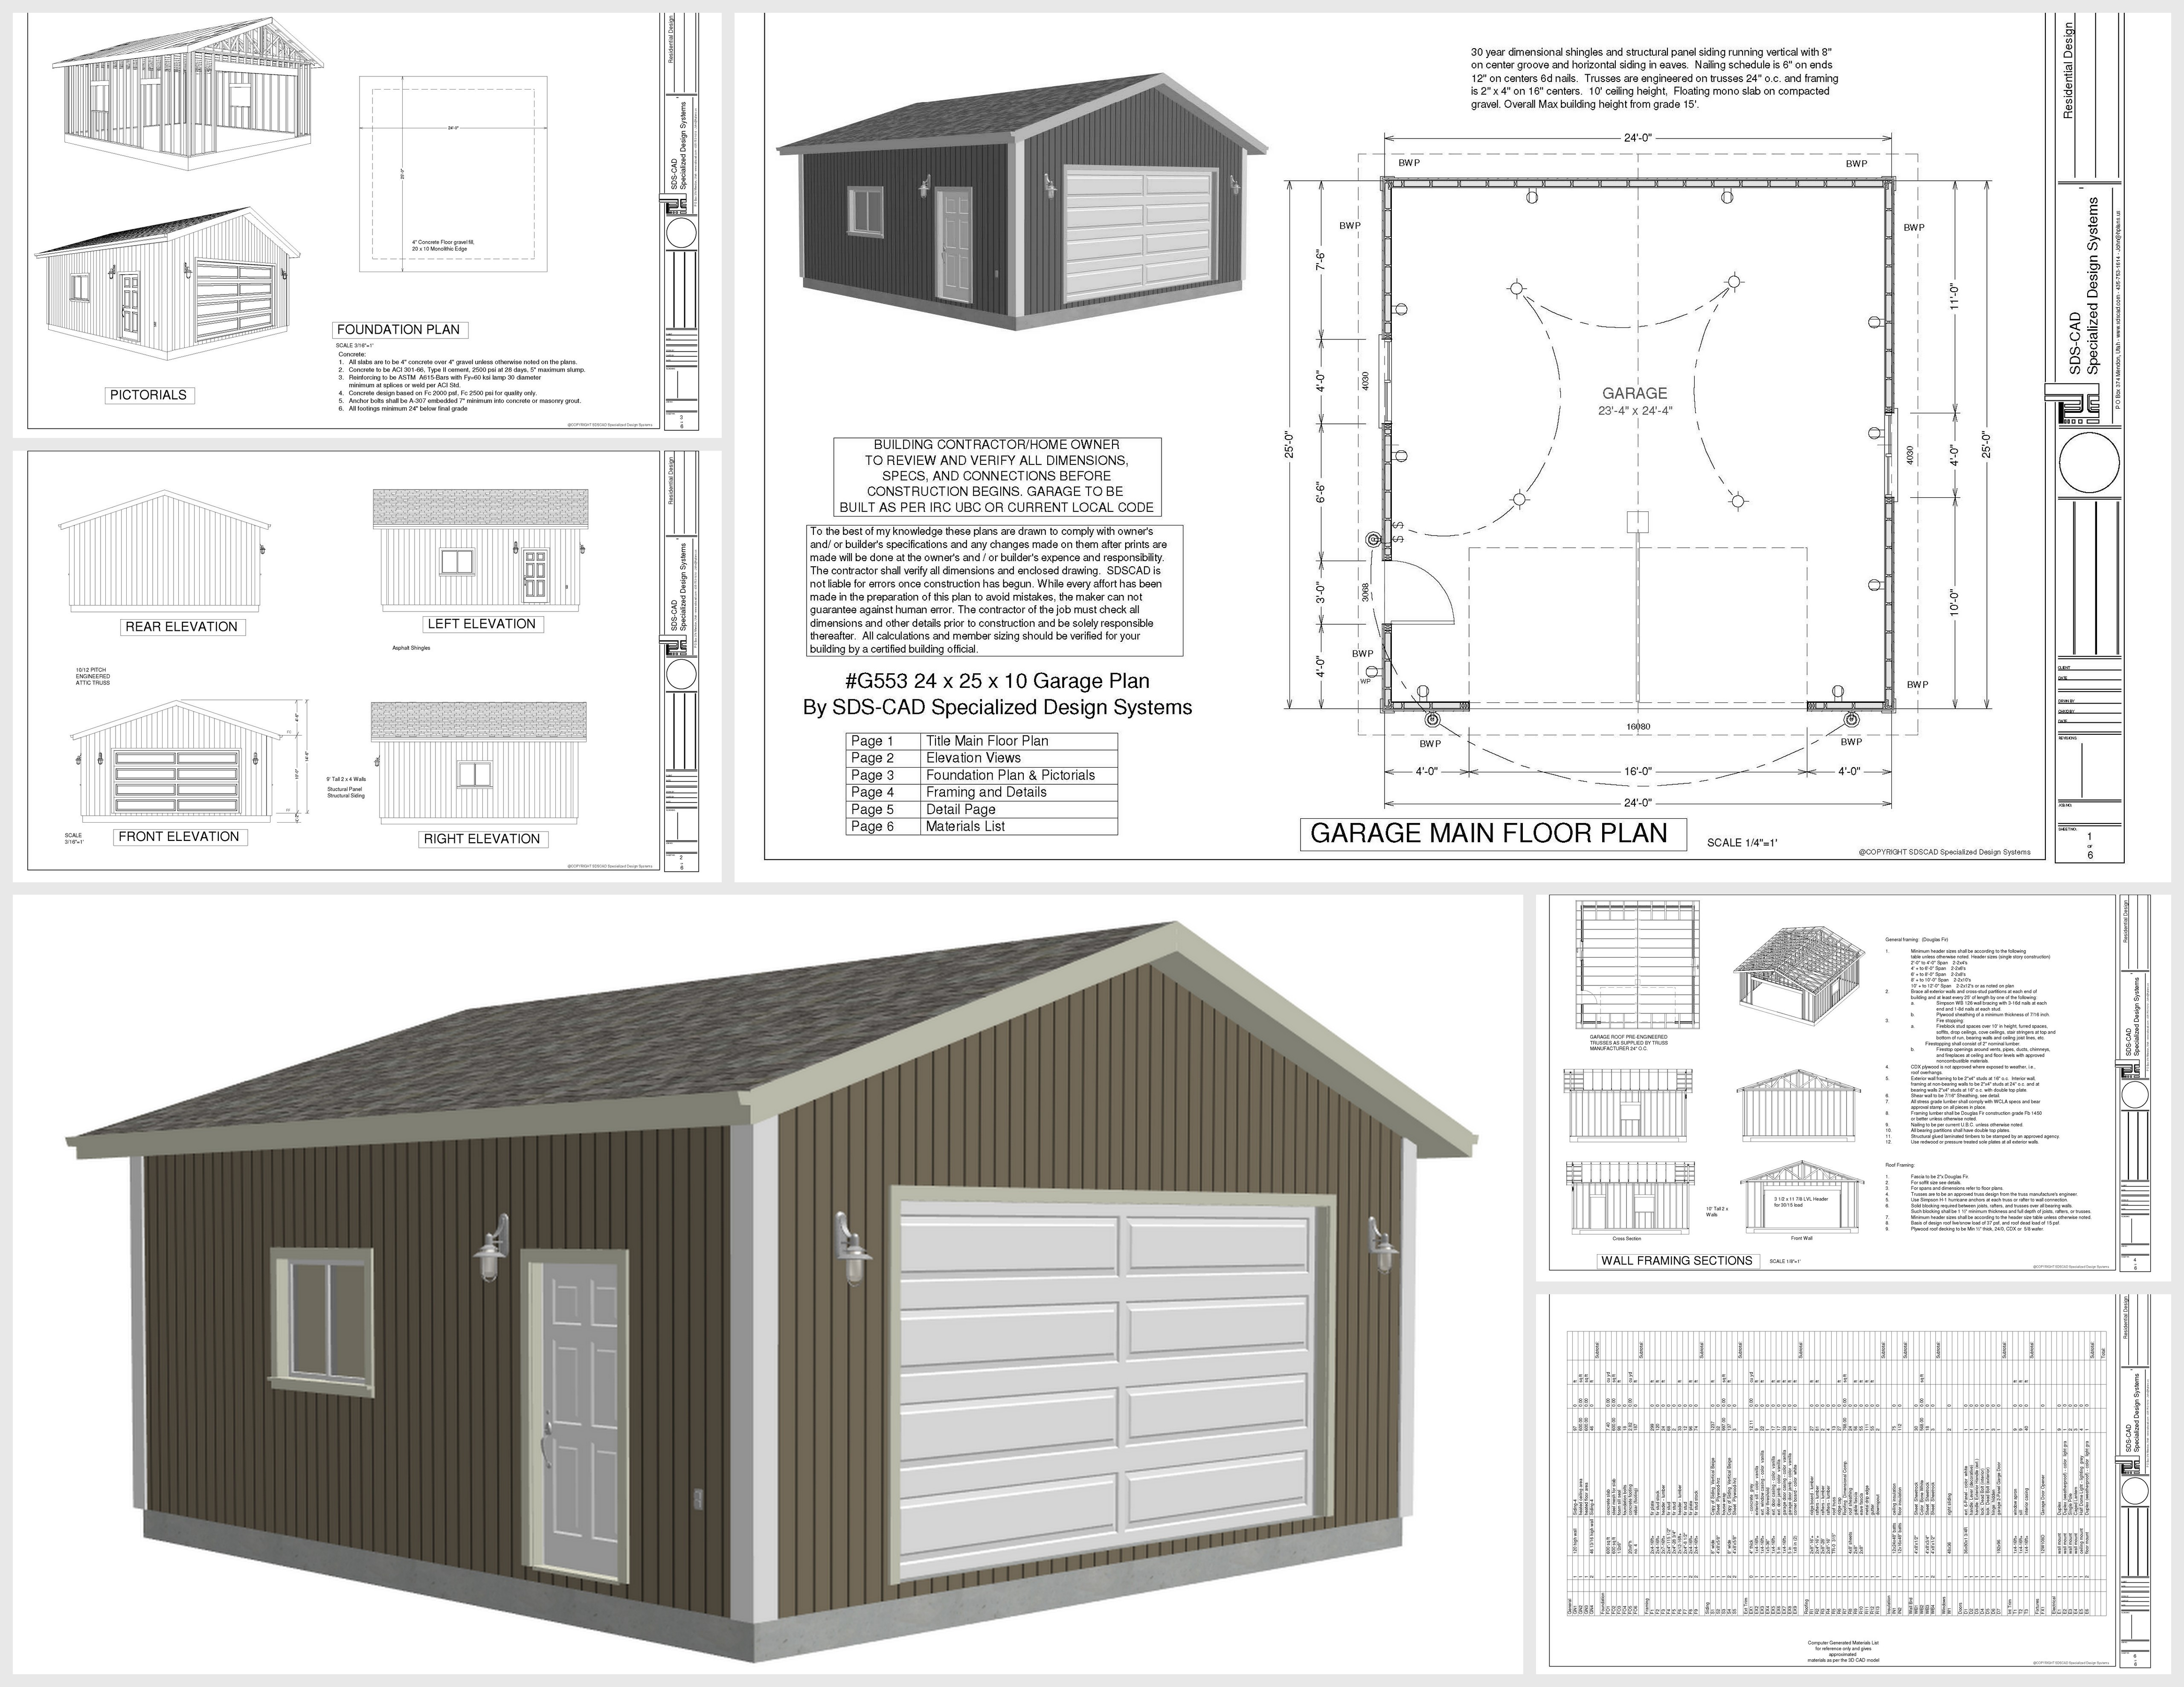 G553 24 x 25 x 10 garage plans with pdf and dwg files for Garage plans free blueprints